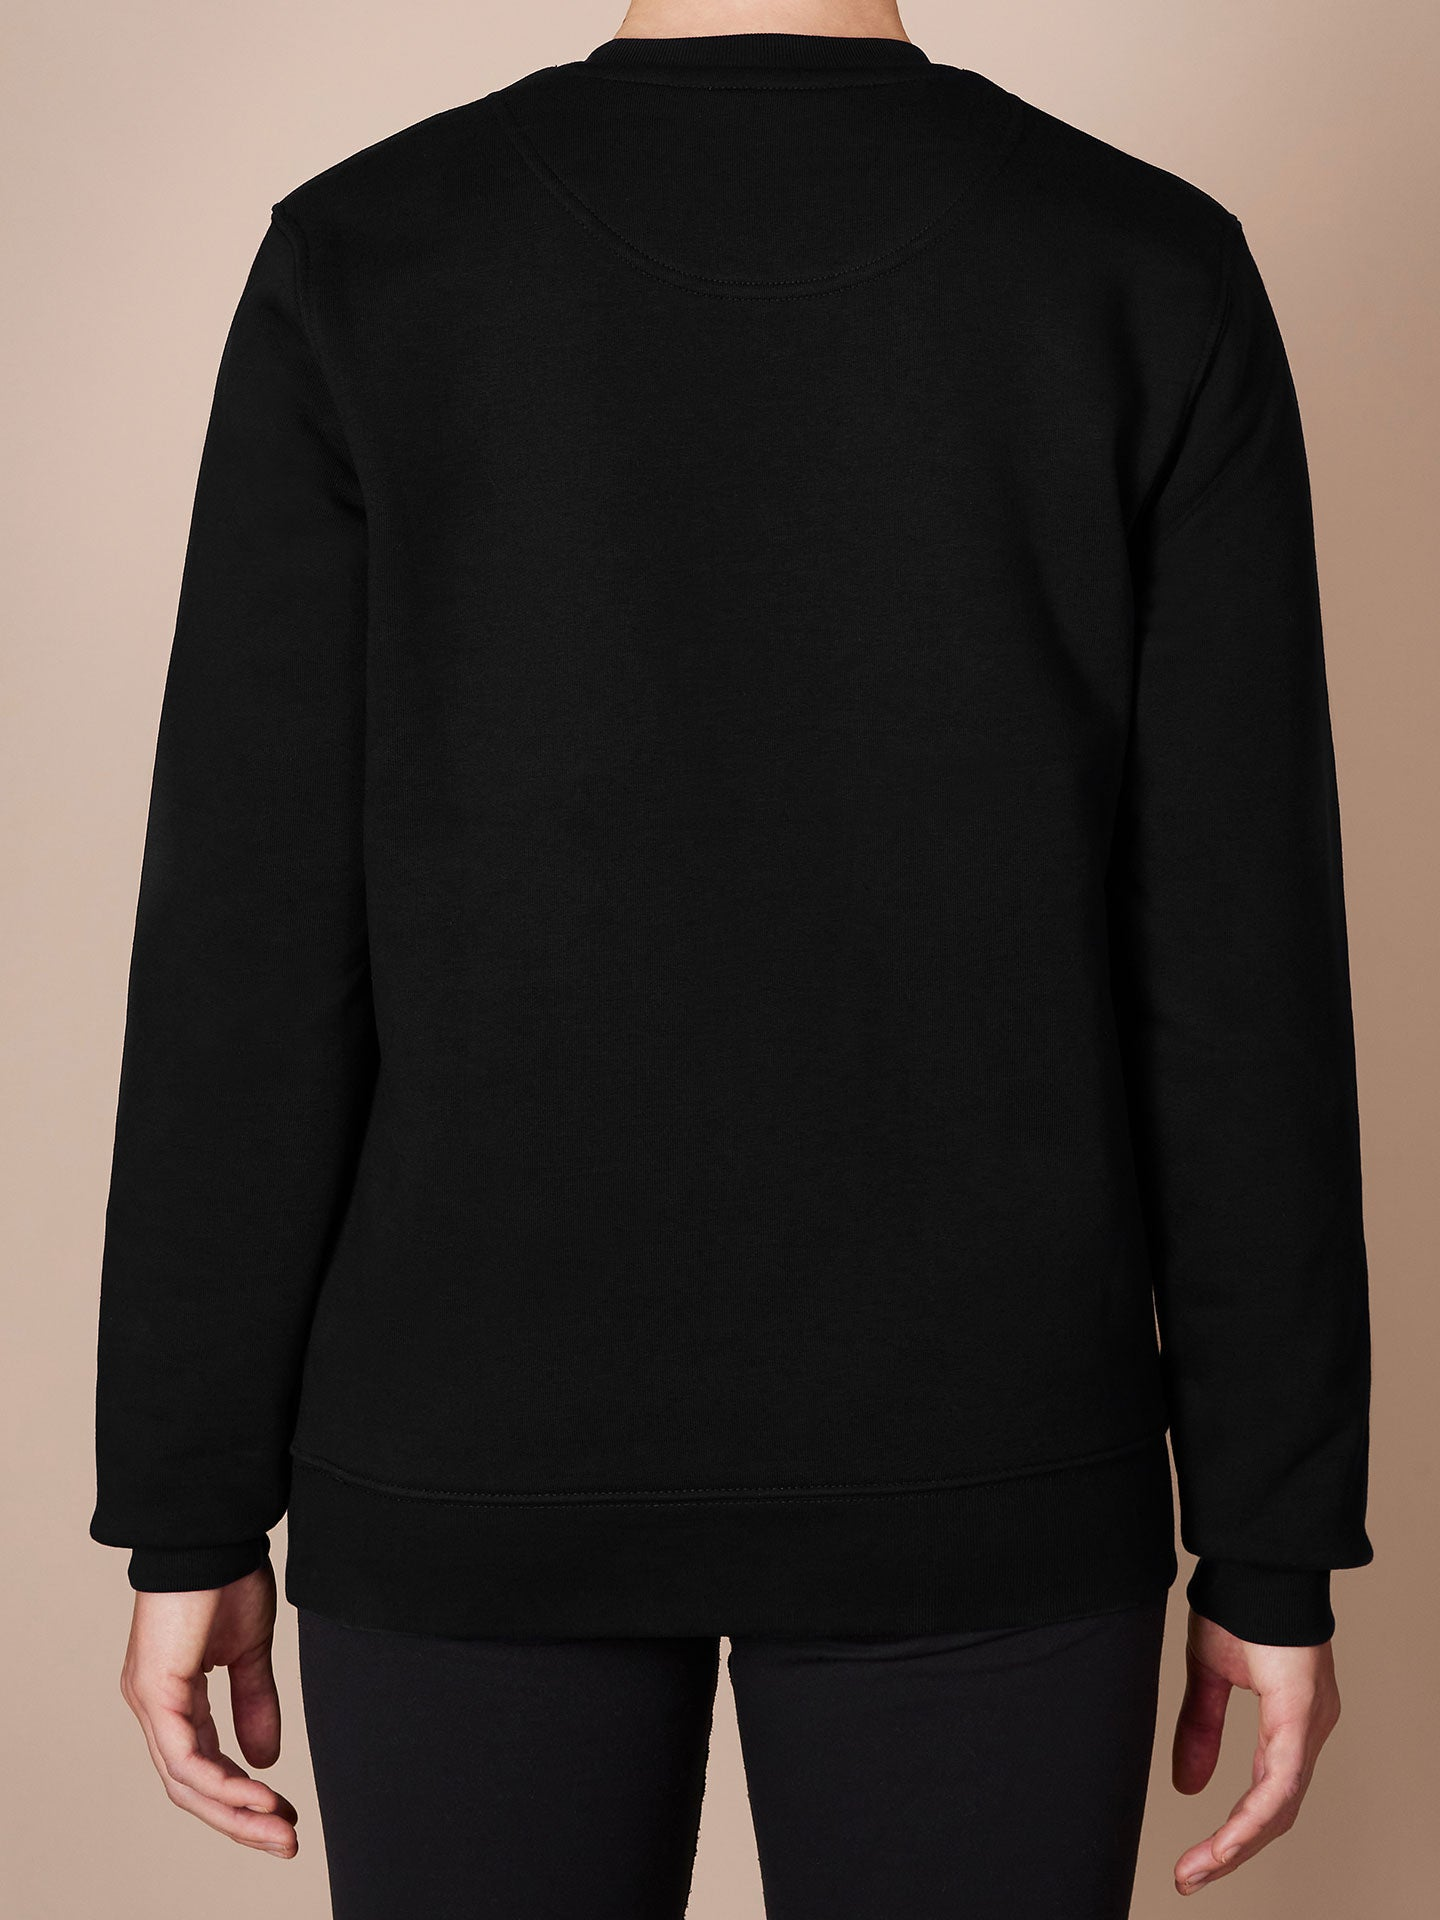 NGNM Mantra Sweathshirt black back